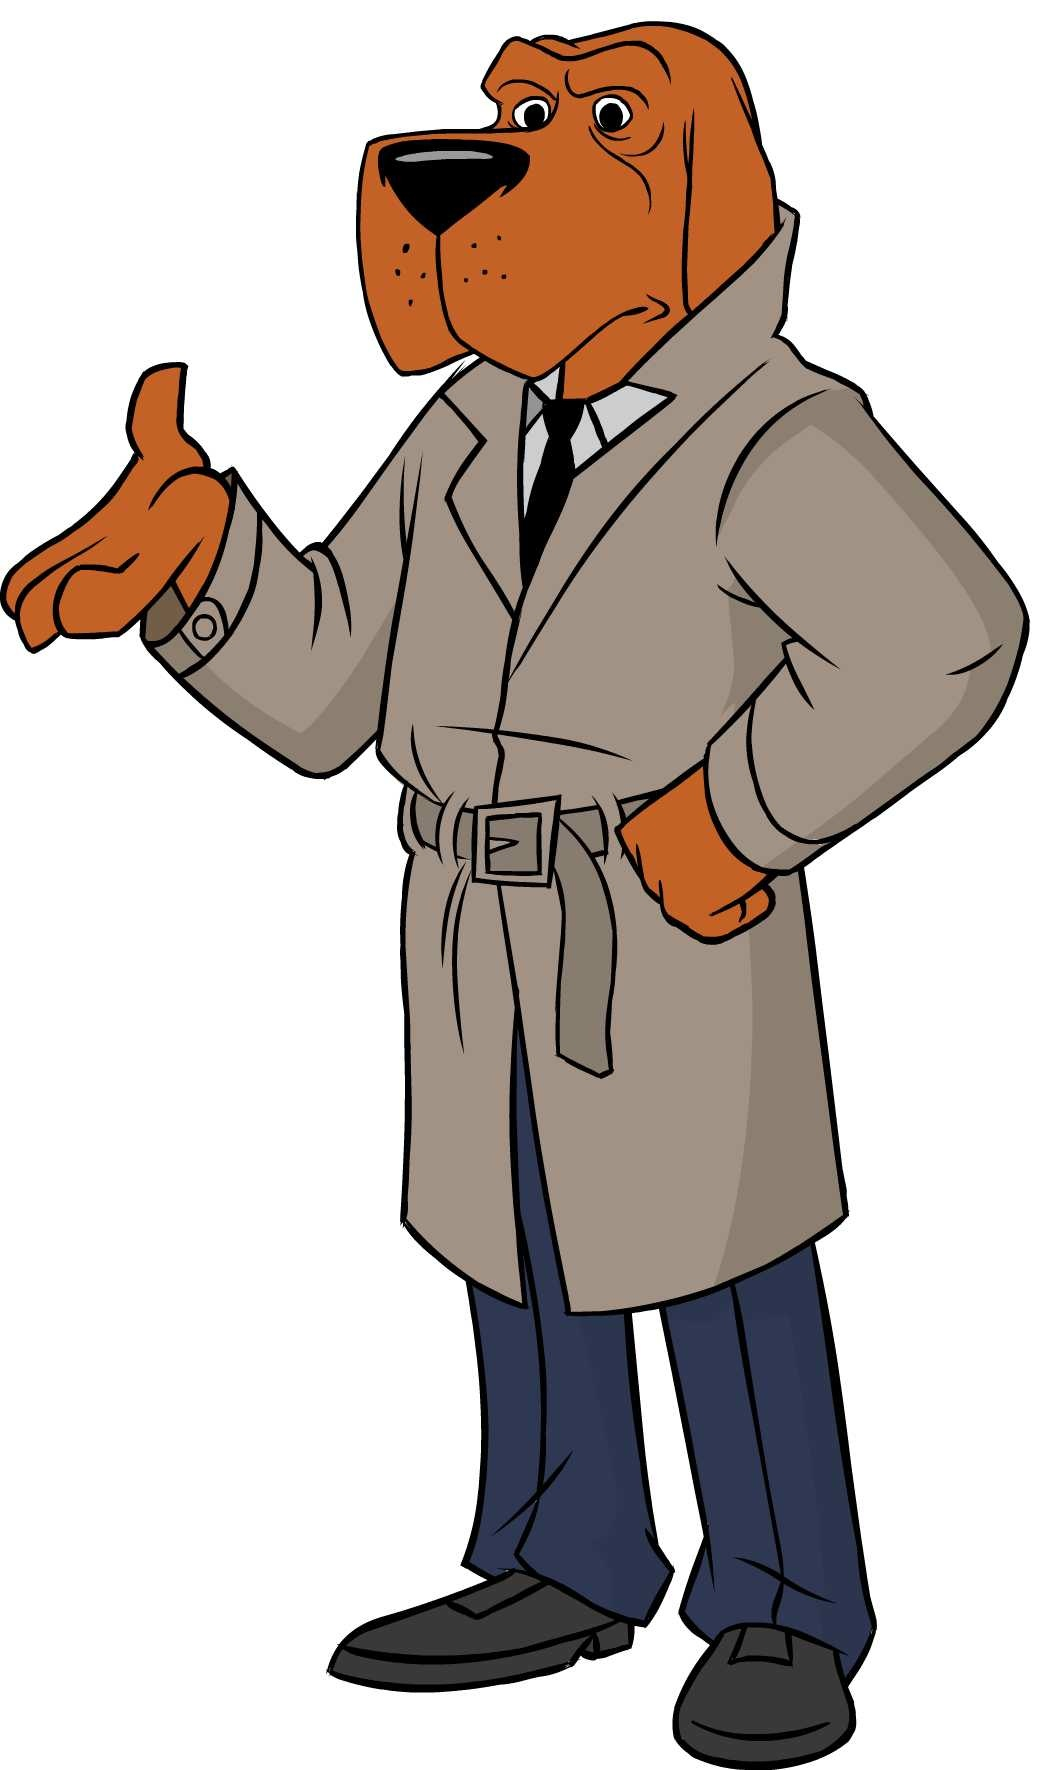 mcgruff the crime dog made up characters wiki fandom powered by